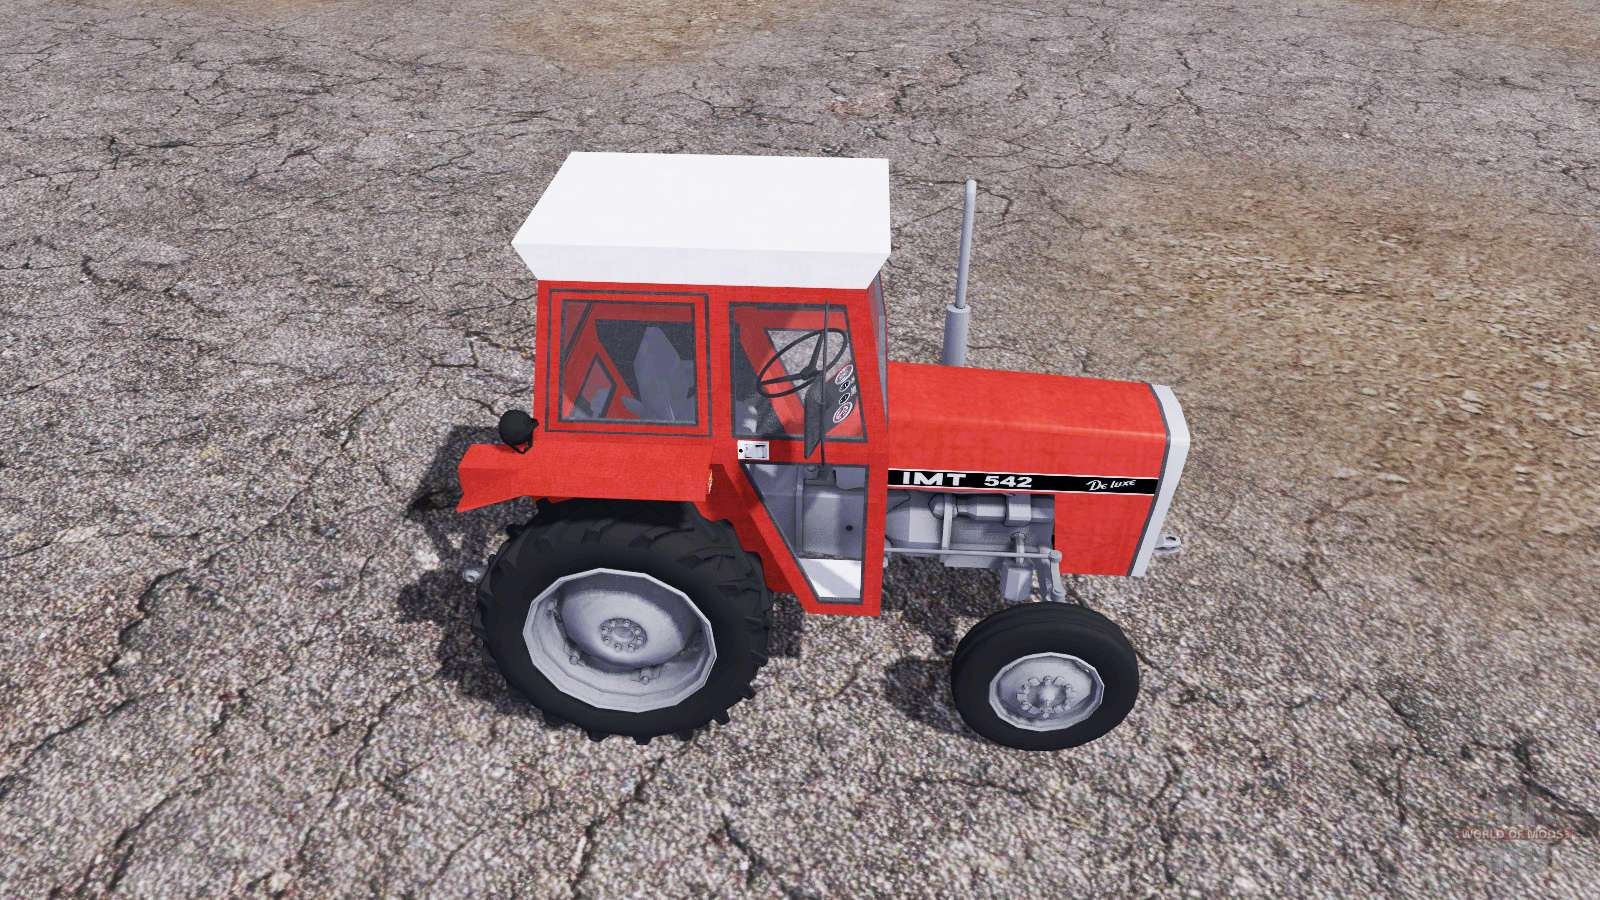 imt 542 deluxe for farming simulator 2013 rh worldofmods com IMT 542 Tractor Parts IMT Tractor Deluxe